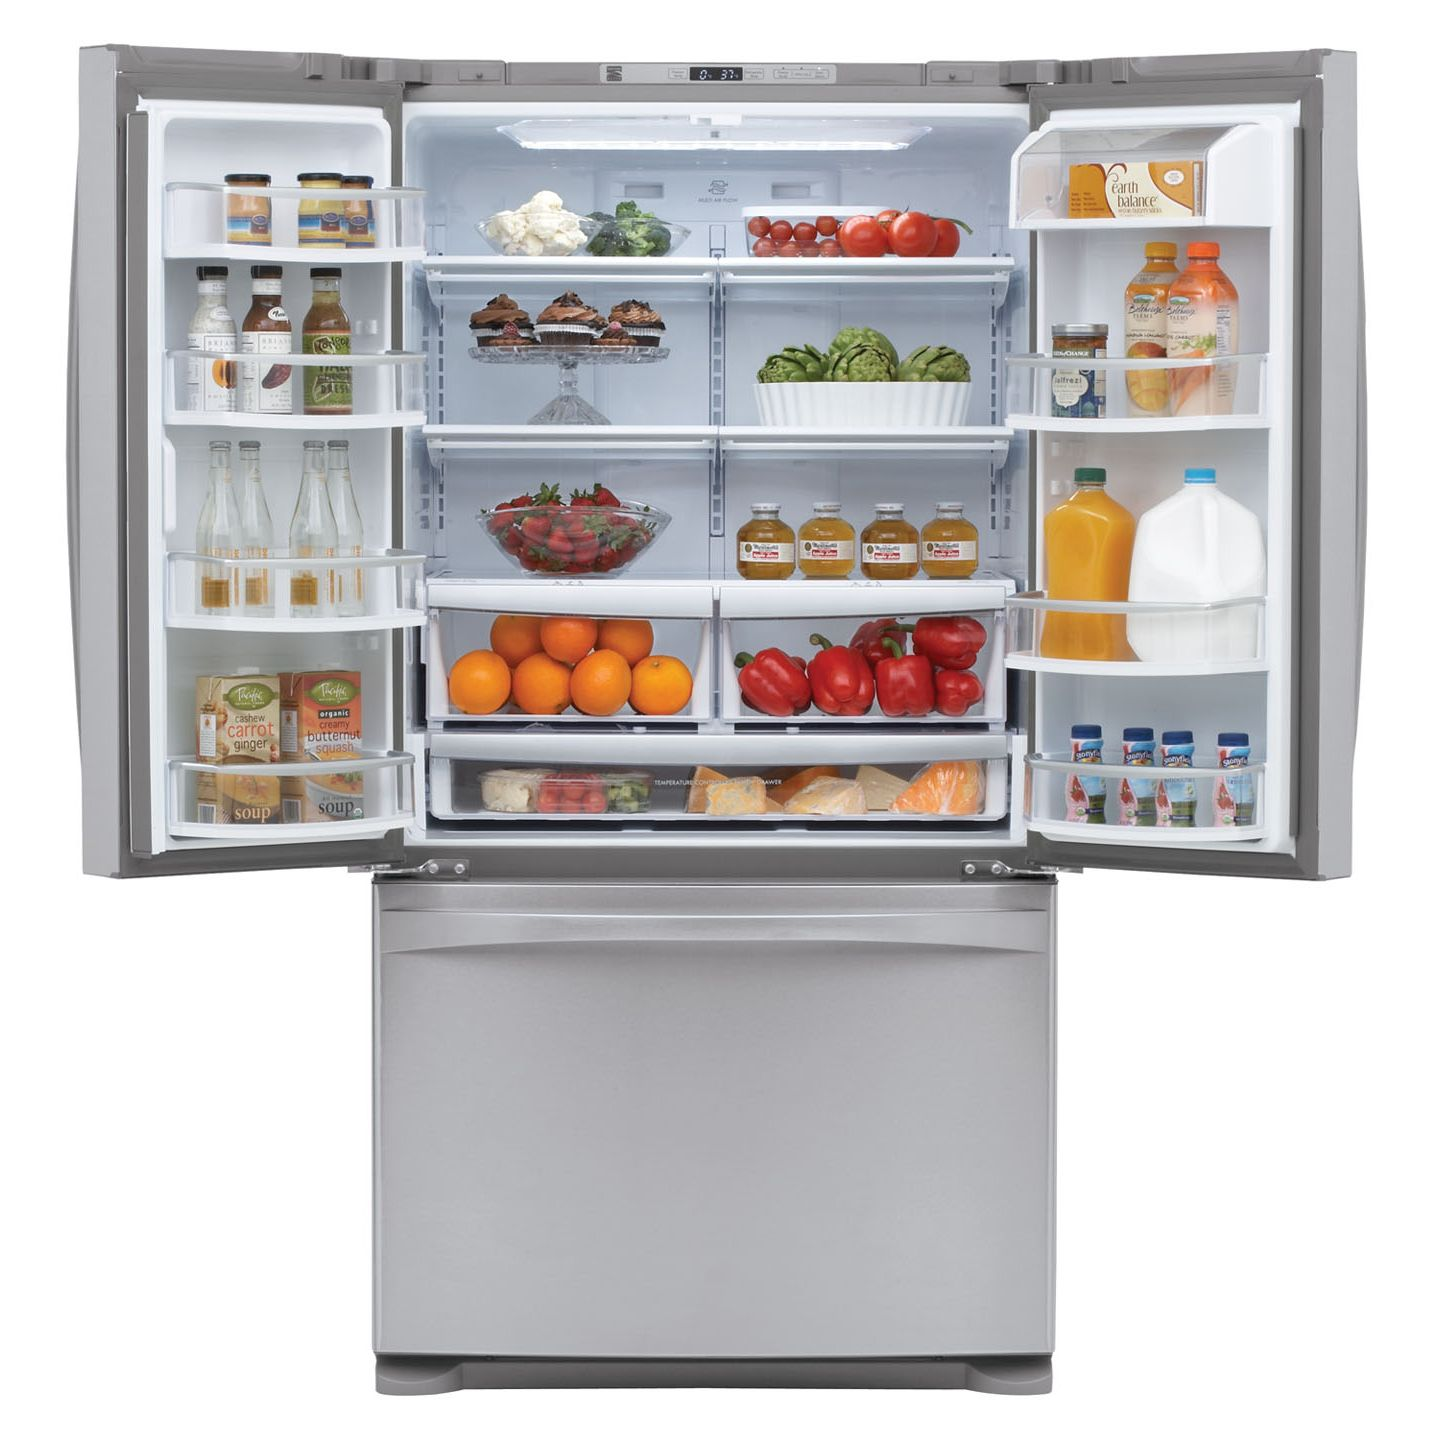 Kenmore Elite 27.6 cu. ft. French-Door Bottom-Freezer Refrigerator